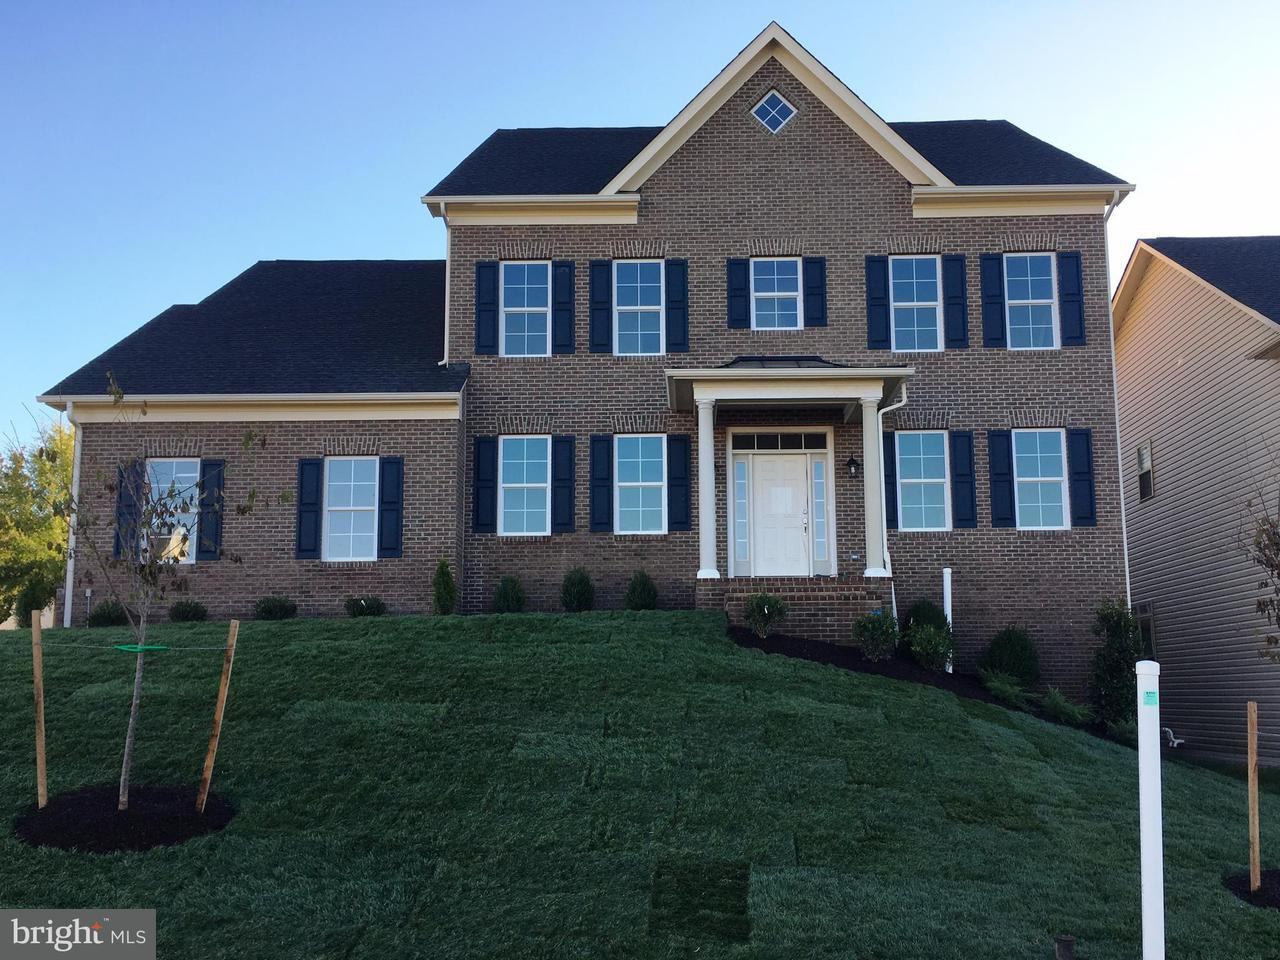 Single Family Home for Sale at 22007 WINDING WOODS WAY 22007 WINDING WOODS WAY Clarksburg, Maryland 20871 United States